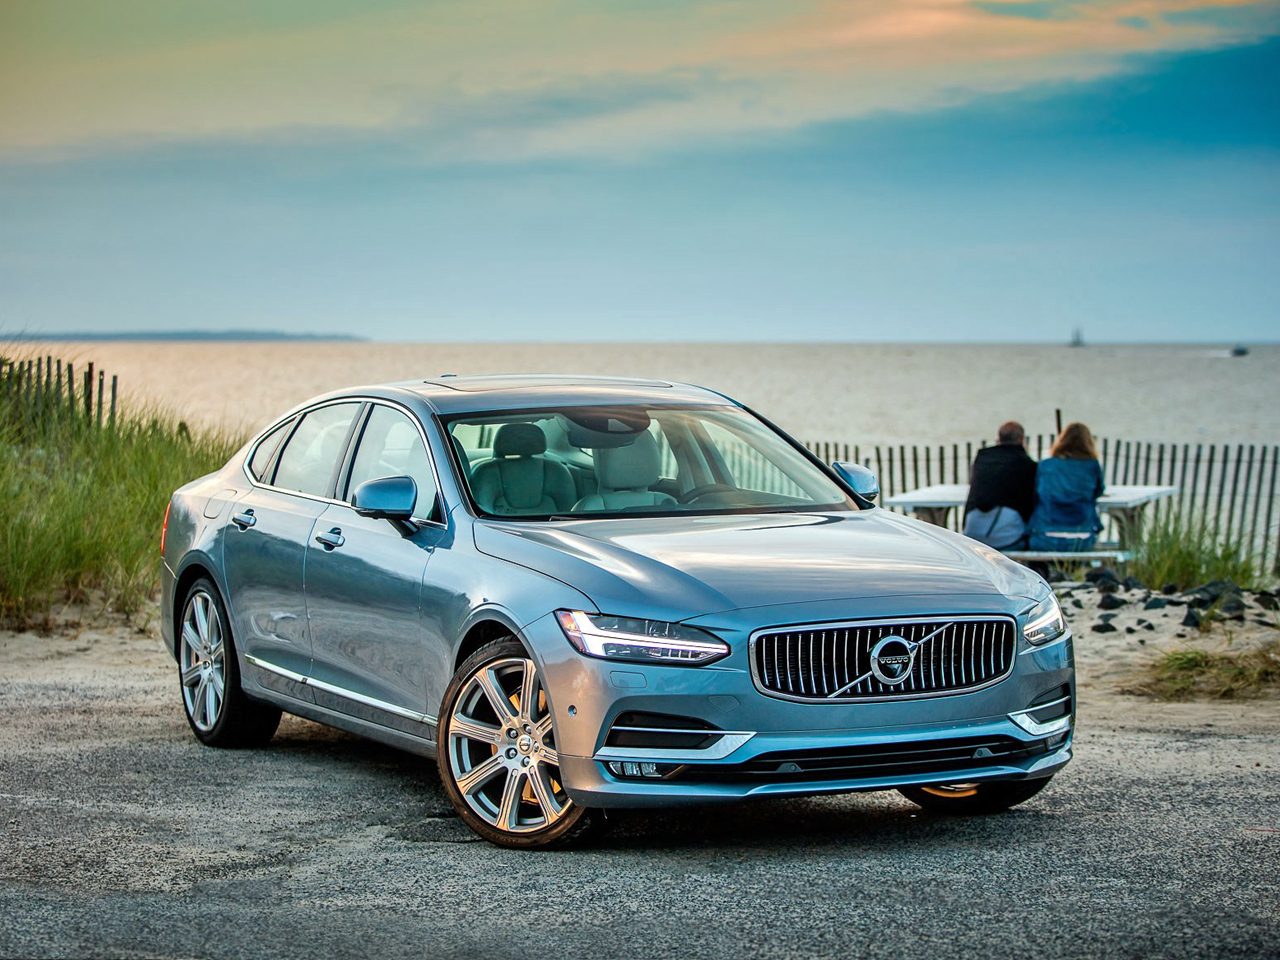 2017 volvo s90 t6 awd road test review carcostcanada. Black Bedroom Furniture Sets. Home Design Ideas